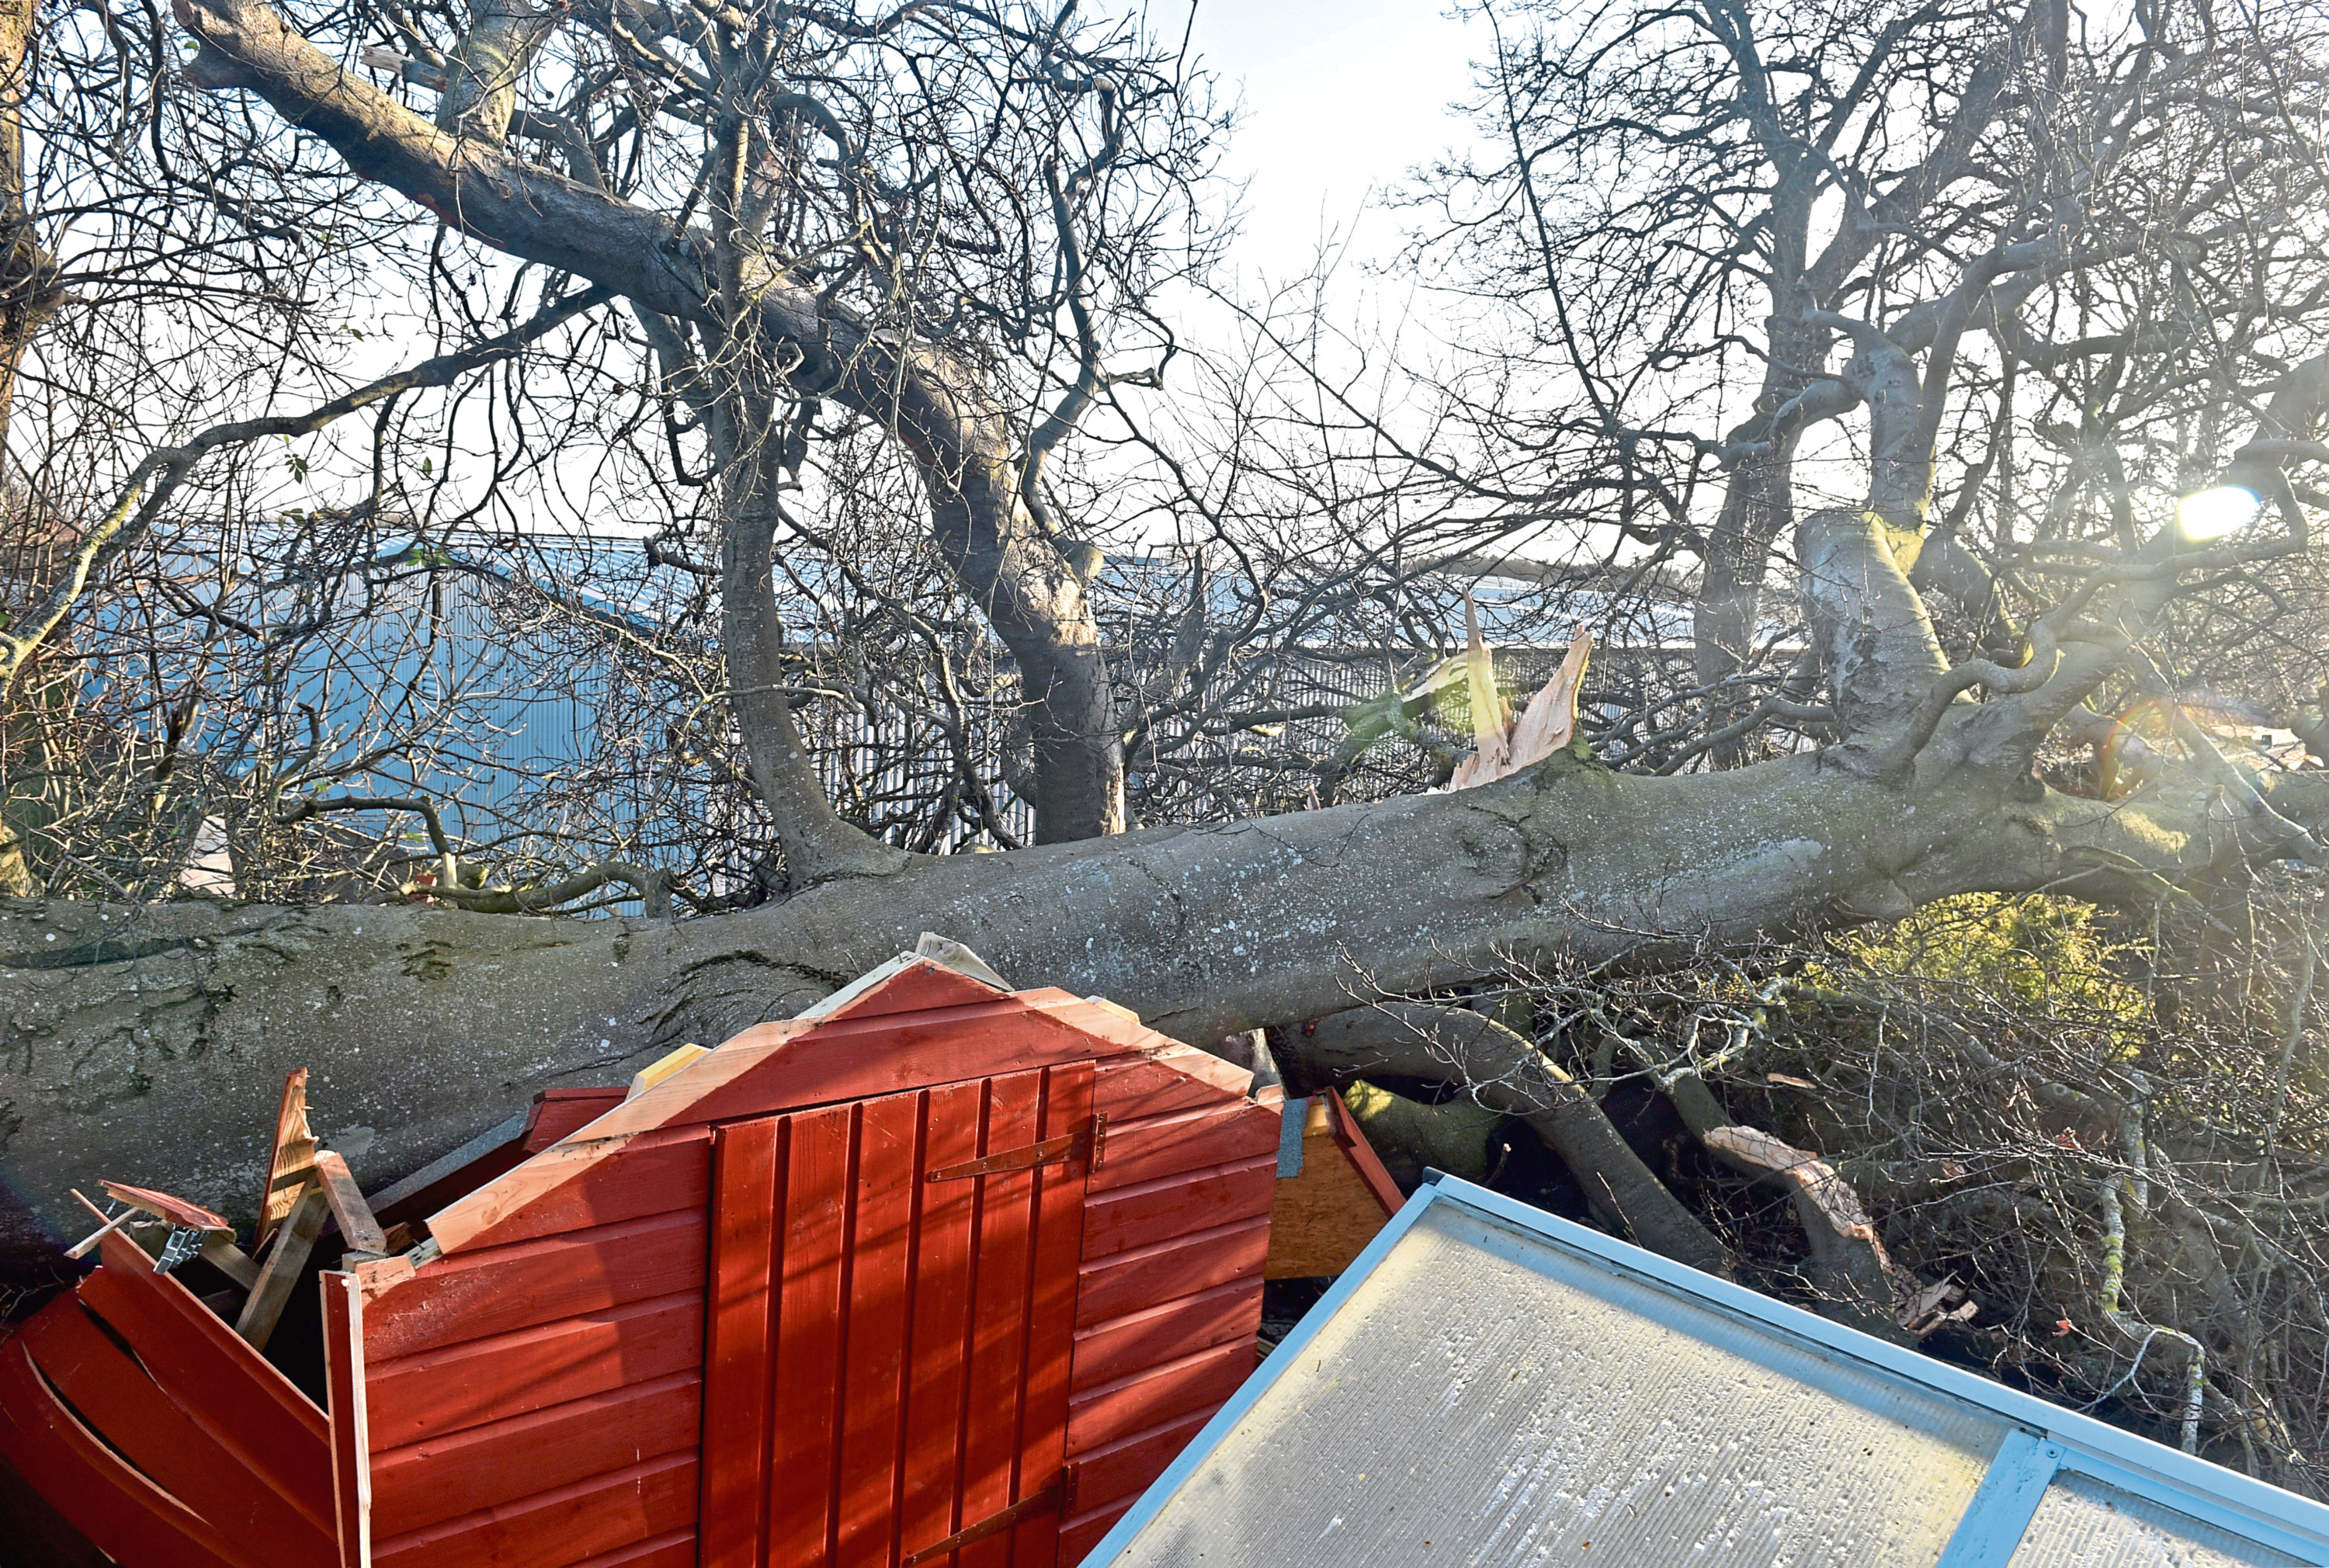 The fallen tree has crashed through sheds and other property in Greenbrae Gardens North in Bridge of Don